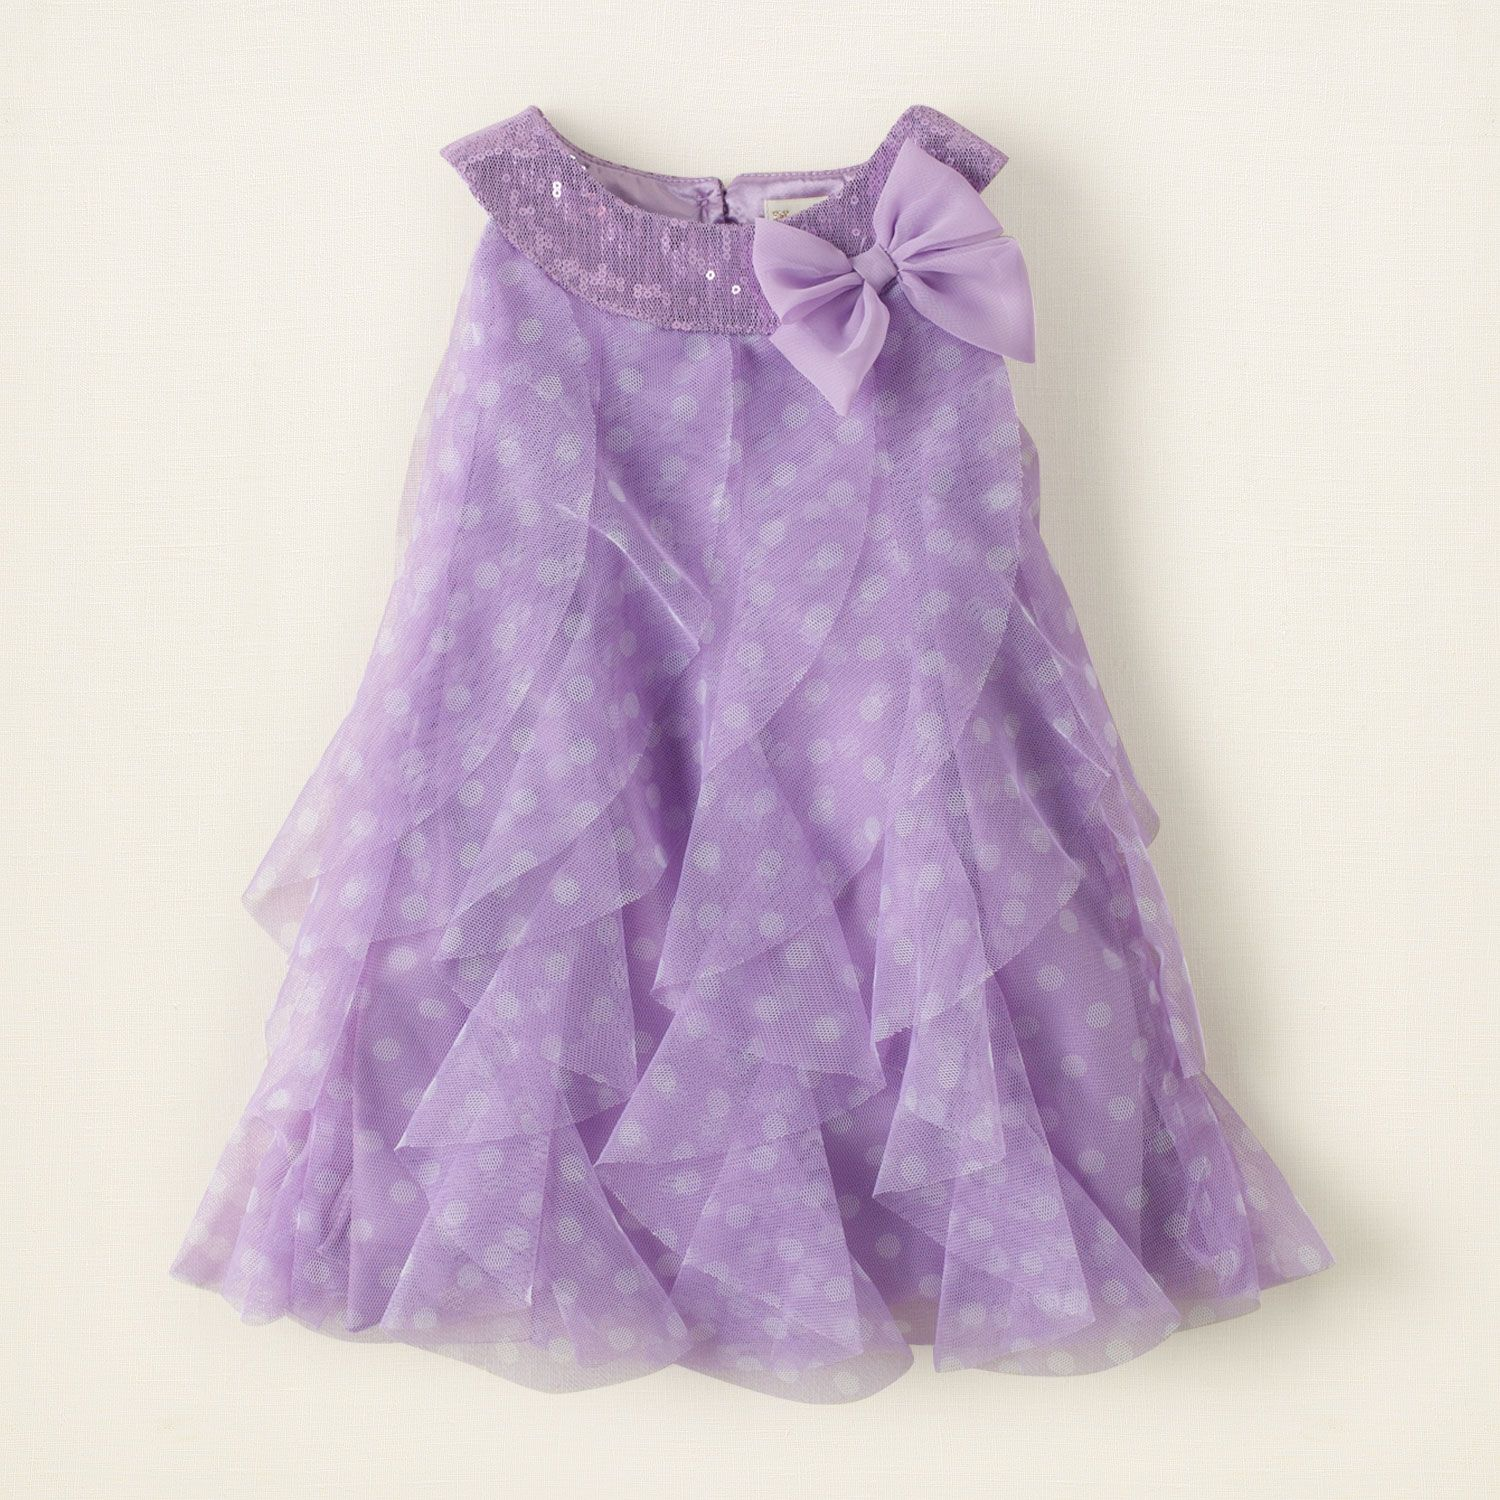 baby girl - dresses & rompers - cascade dot swing dress | Children\'s ...